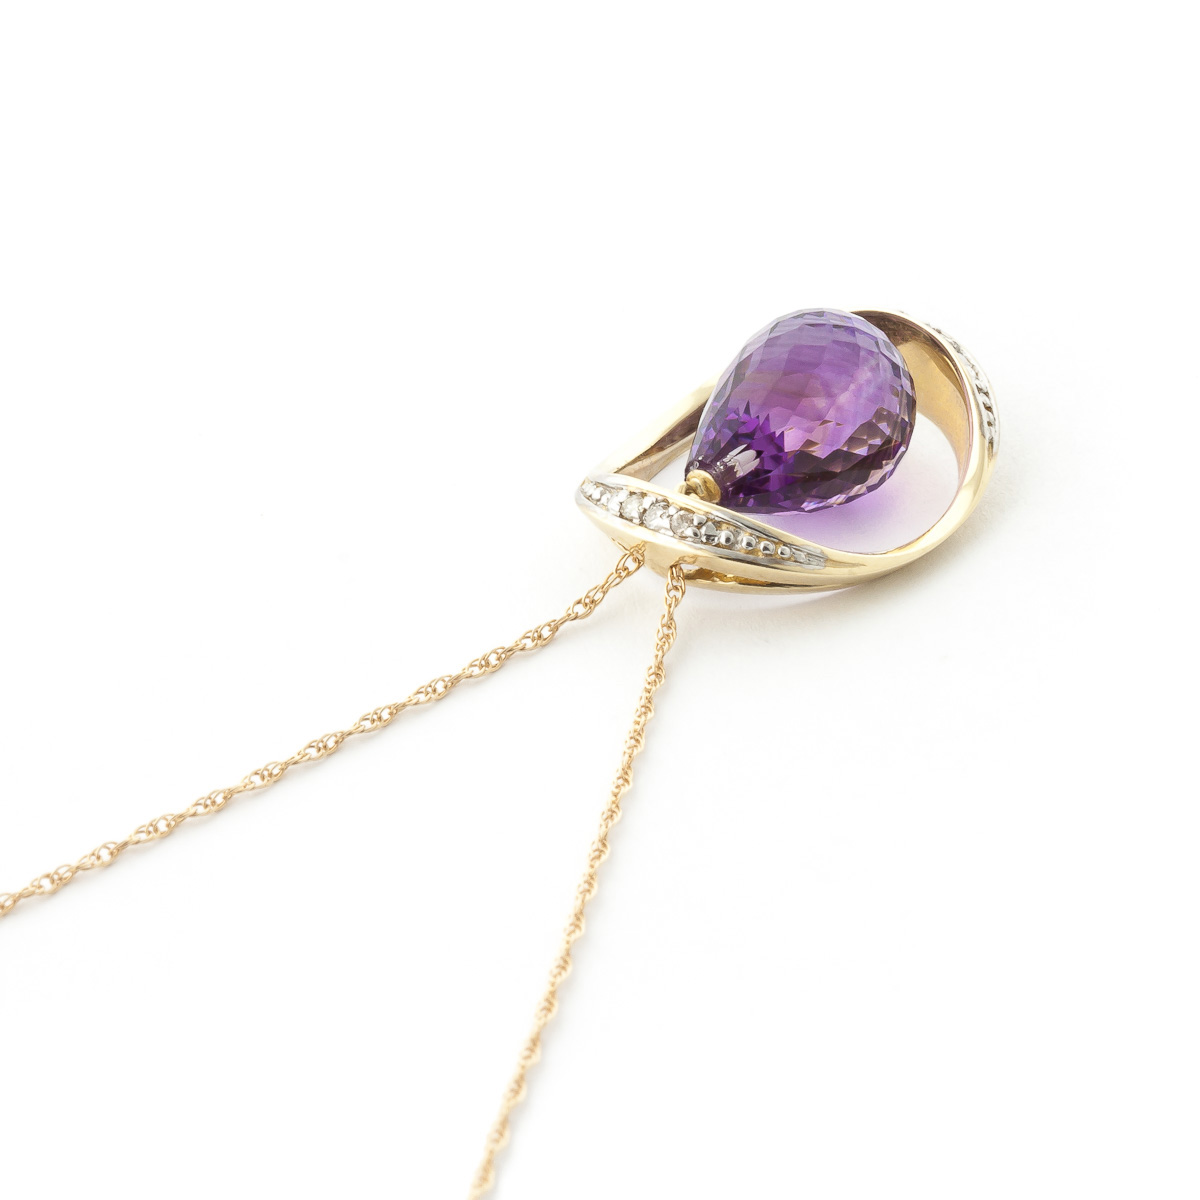 Amethyst & Diamond Pendant Necklace in 9ct Gold